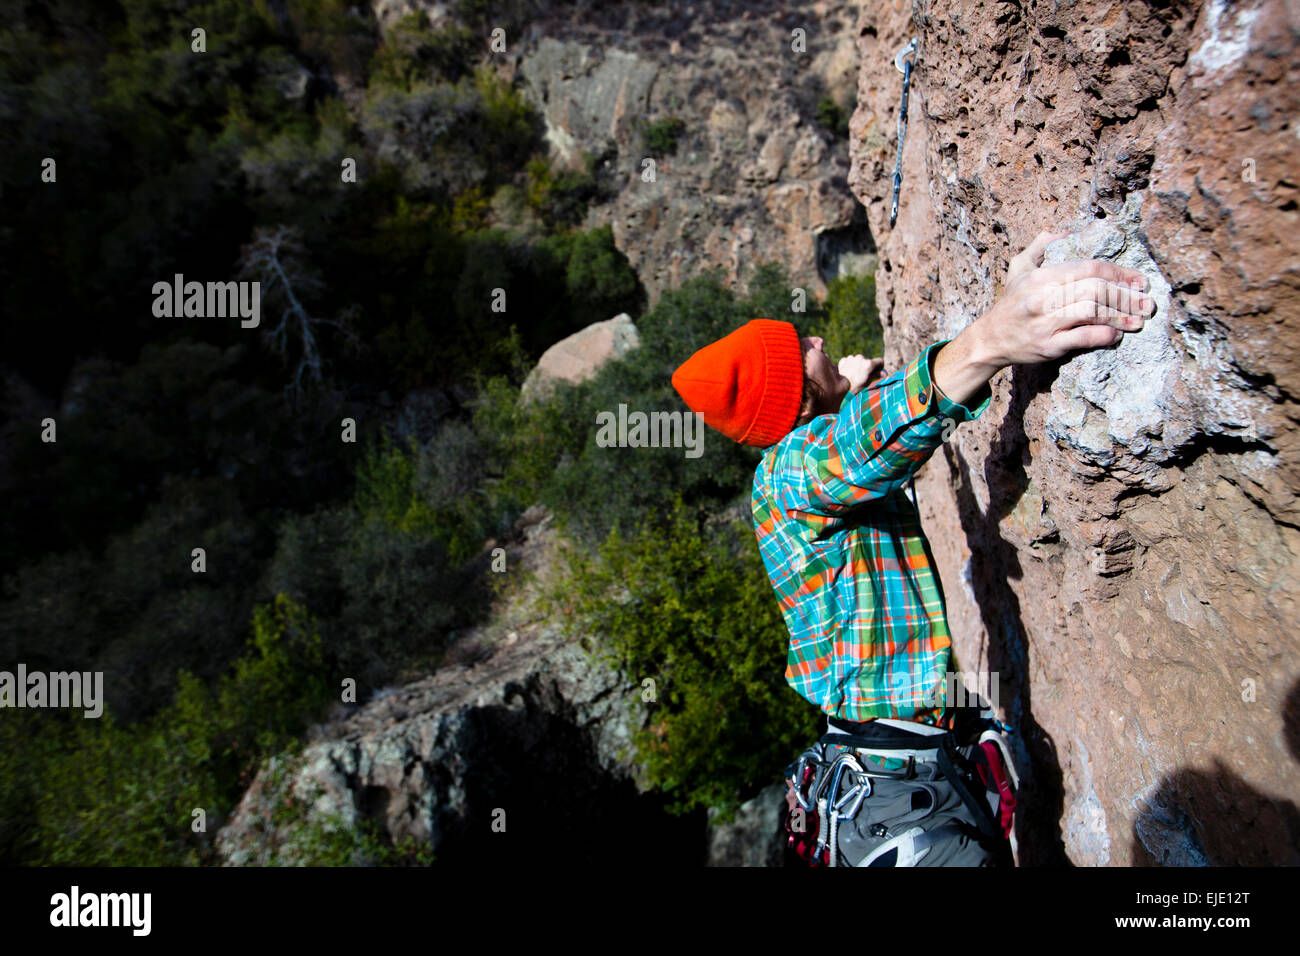 5f0a843e0c3 A male climber in an orange beanie and multicolored shirt climbs Family  Jewel (5.10d